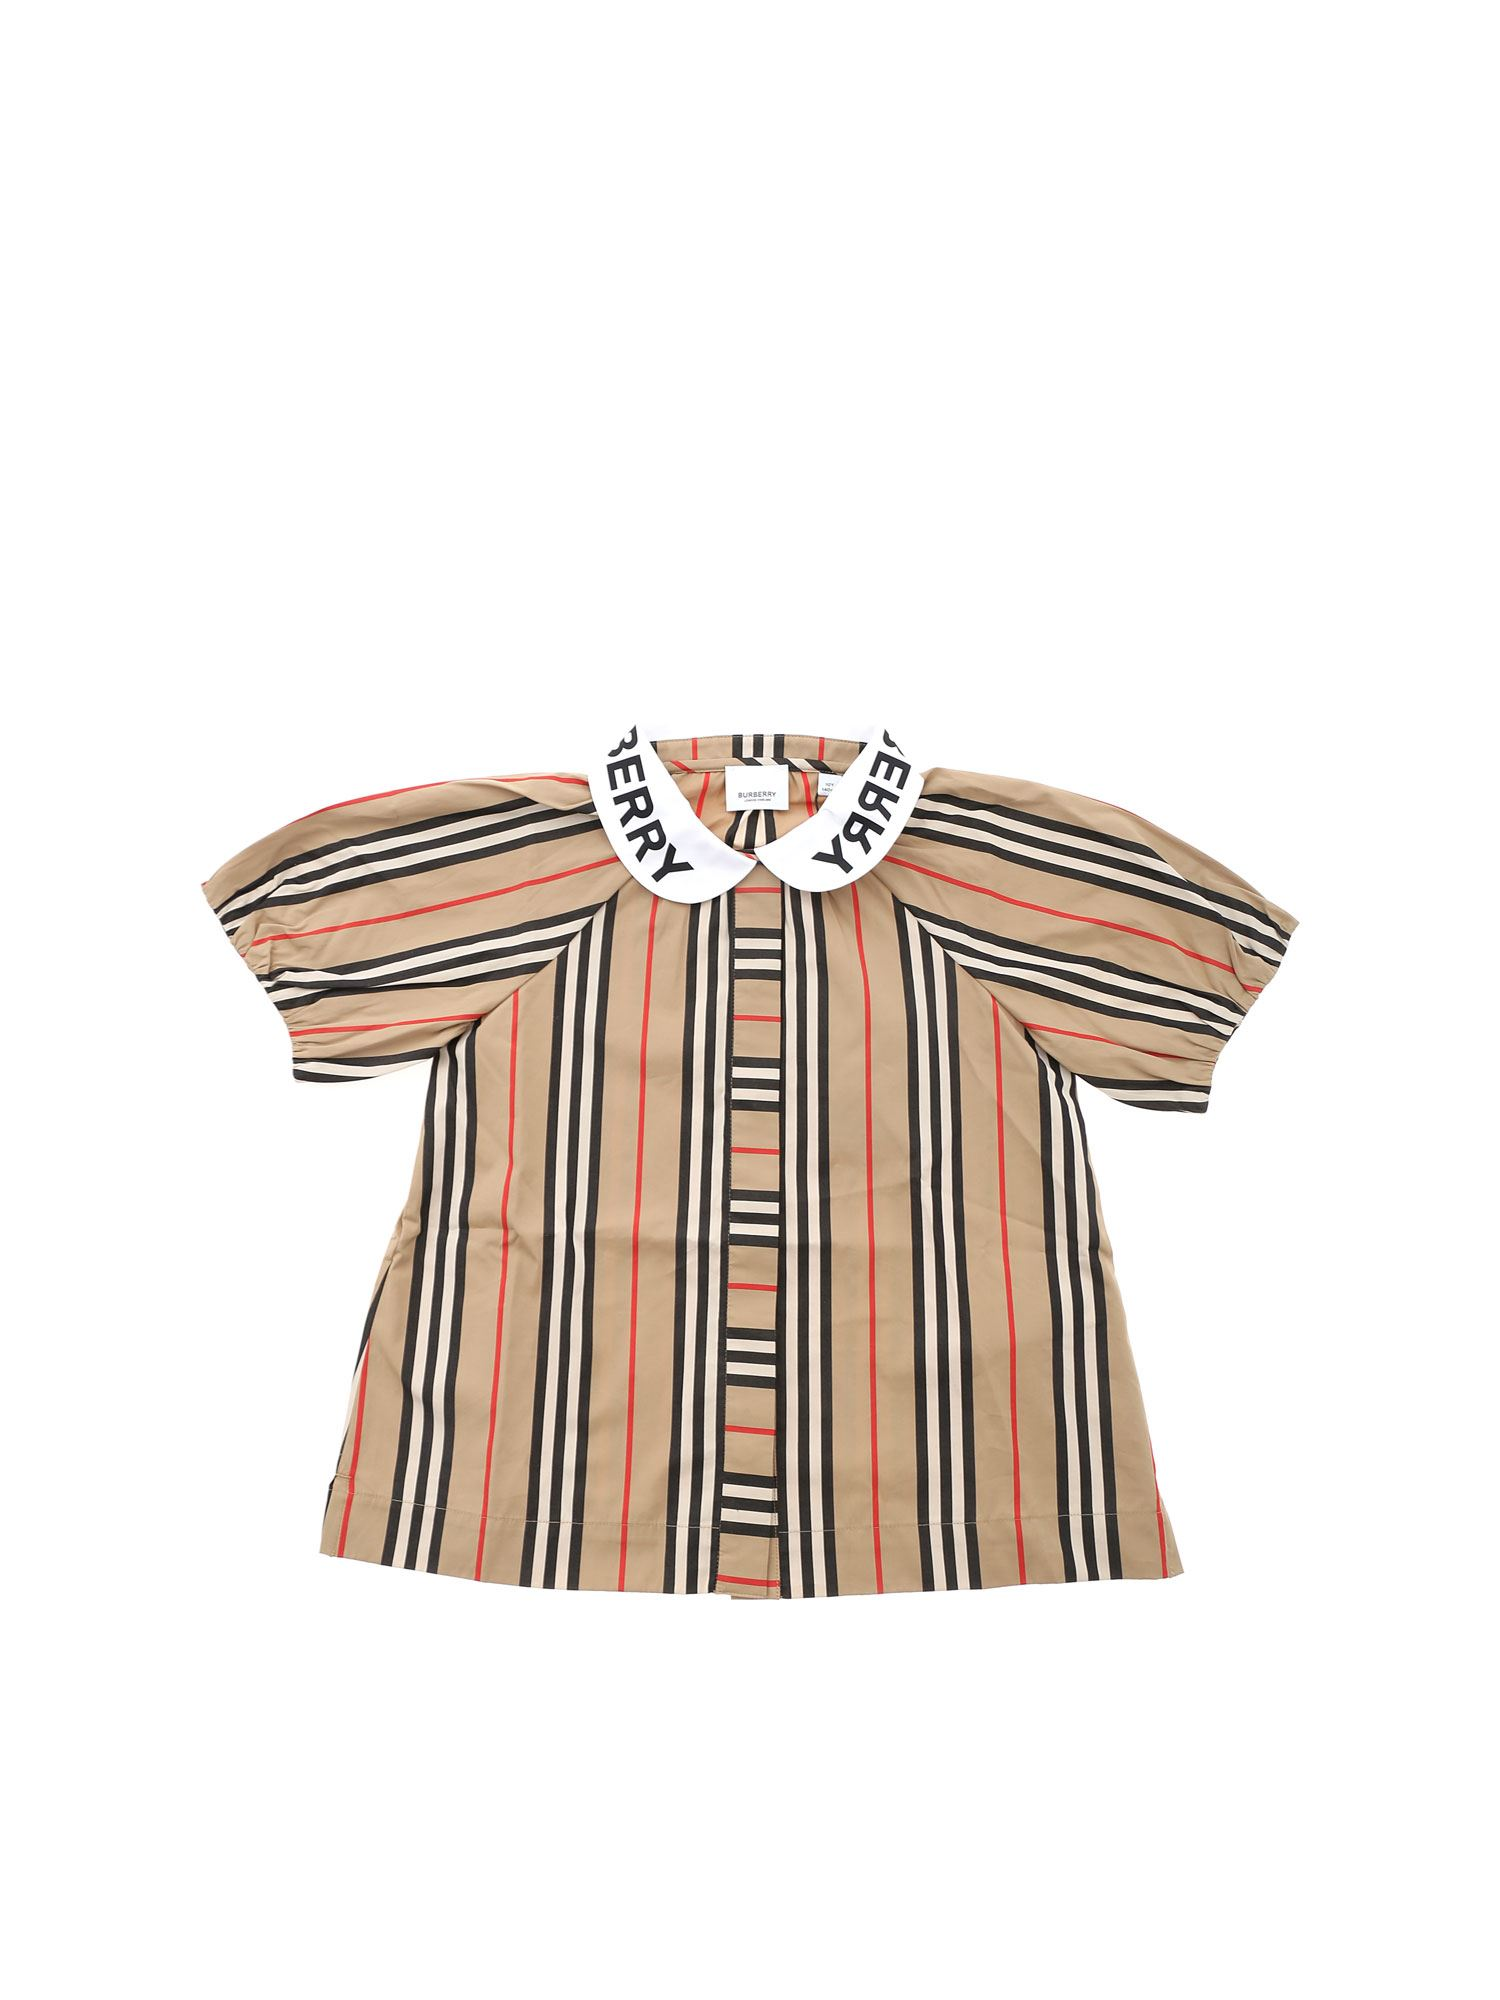 Burberry CECILY SHIRT IN ARCHIVE BEIGE COLOR